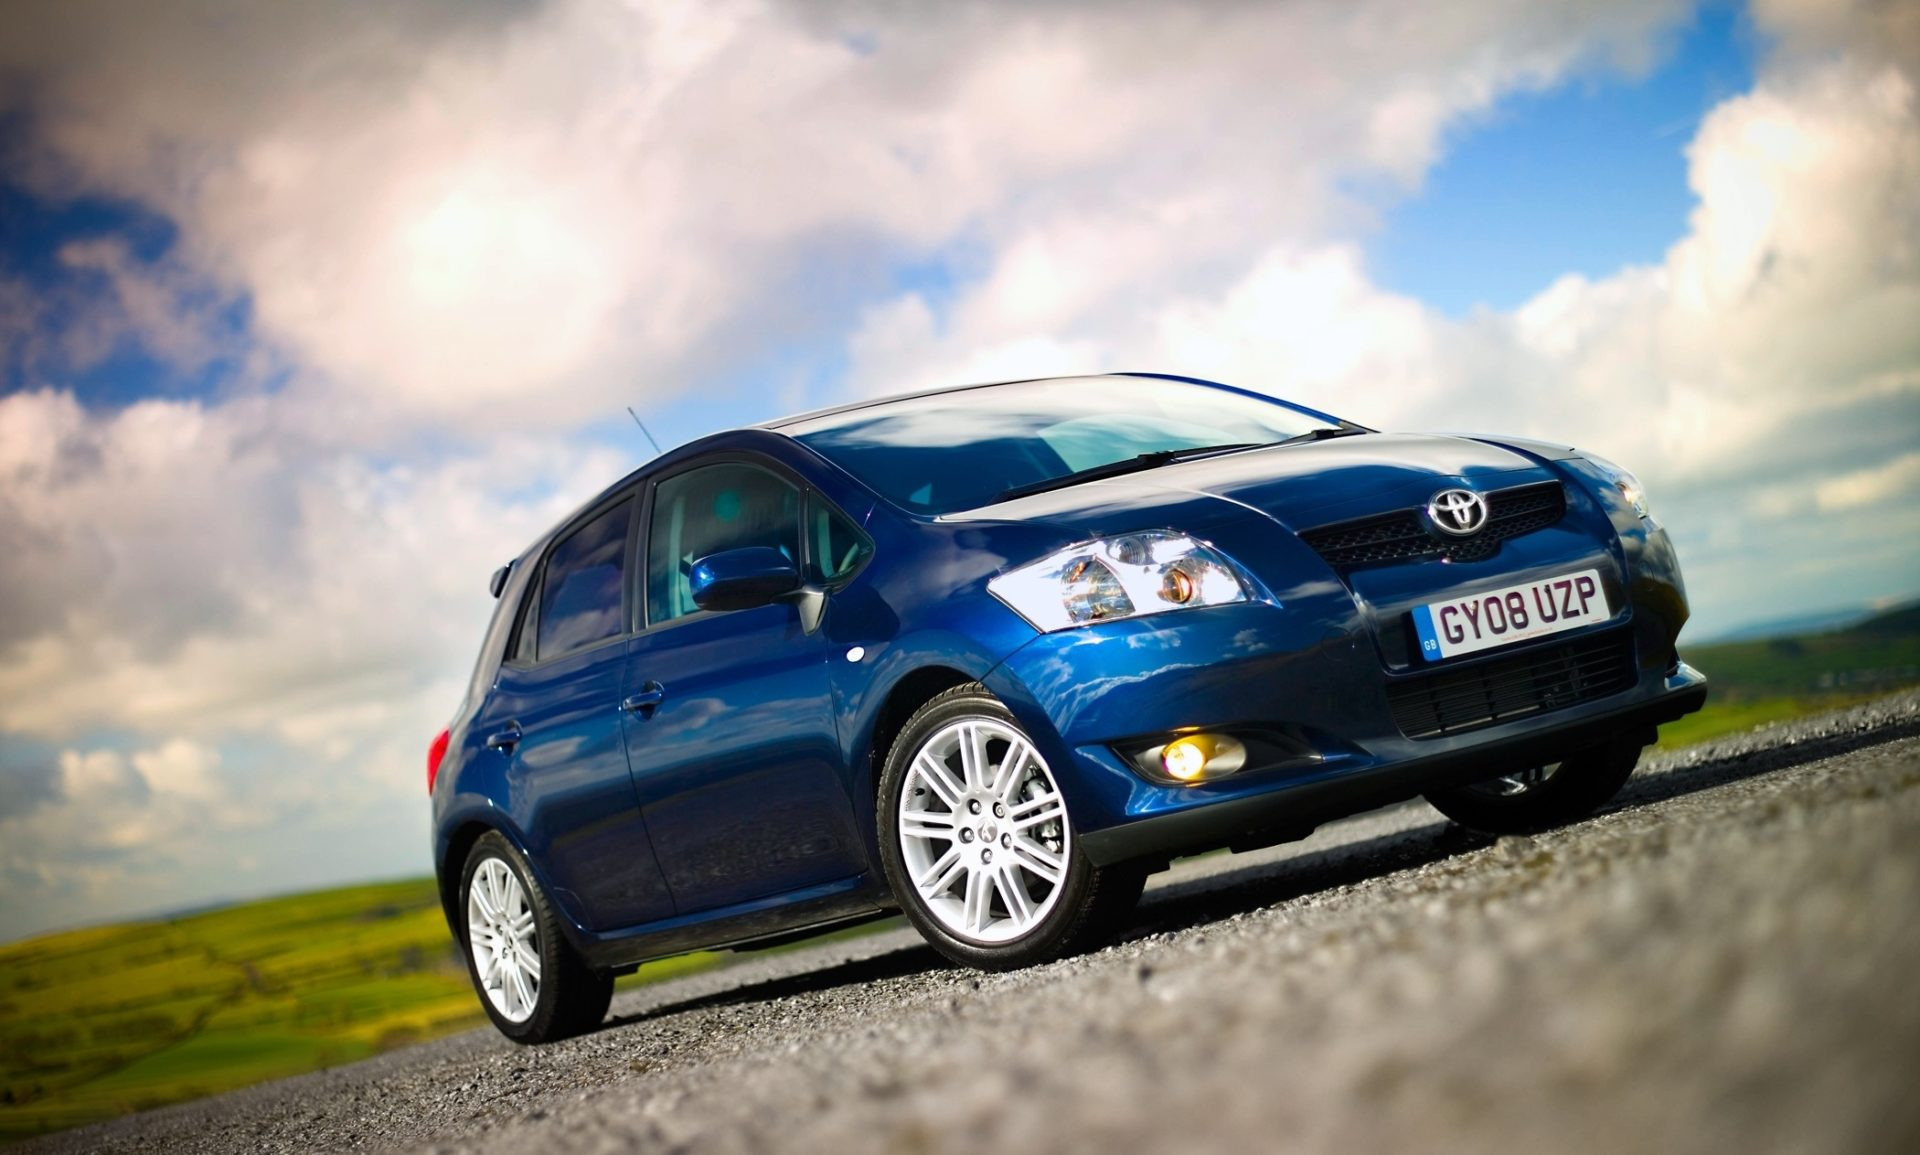 Toyota Auris, Toyota, Auris, Toyota Corolla, Corolla, hatchback, motoring, automotive, featured, car, cars, classic car, retro car, adrian flux, not2grand, www.not2grand.co.uk, Auris review, used Auris, motoring, automotive